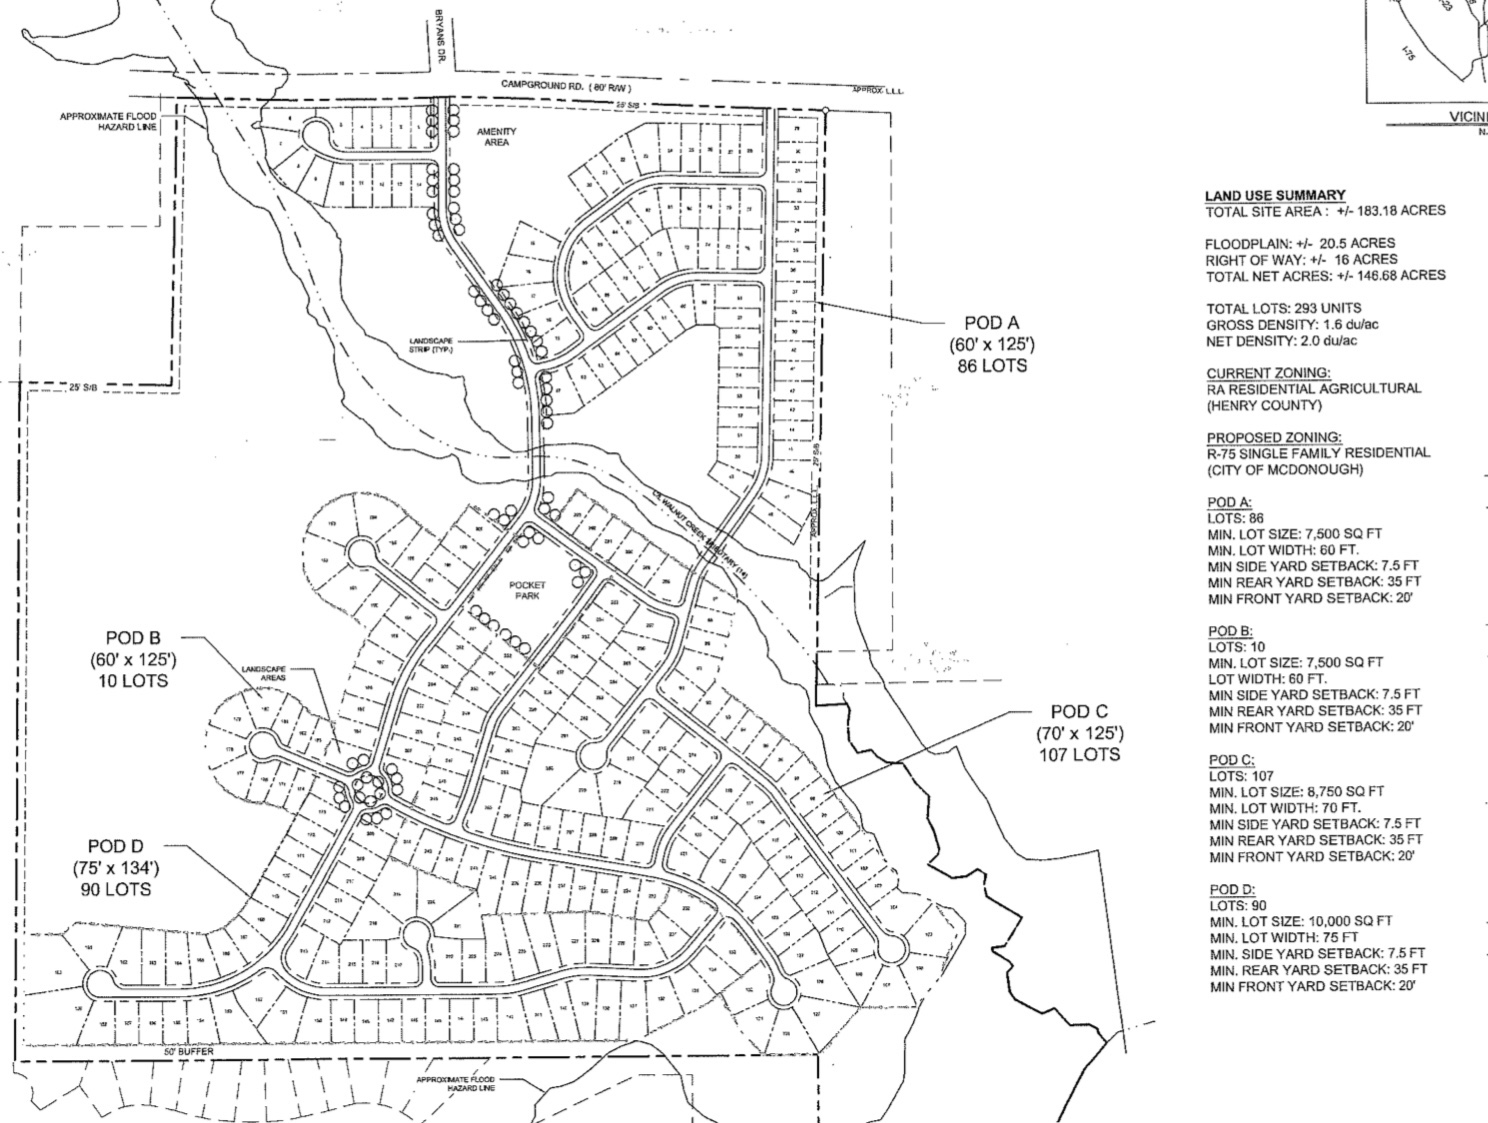 Updated concept site plan for Campground Road annexation and rezoning request (Falcon Design photo)